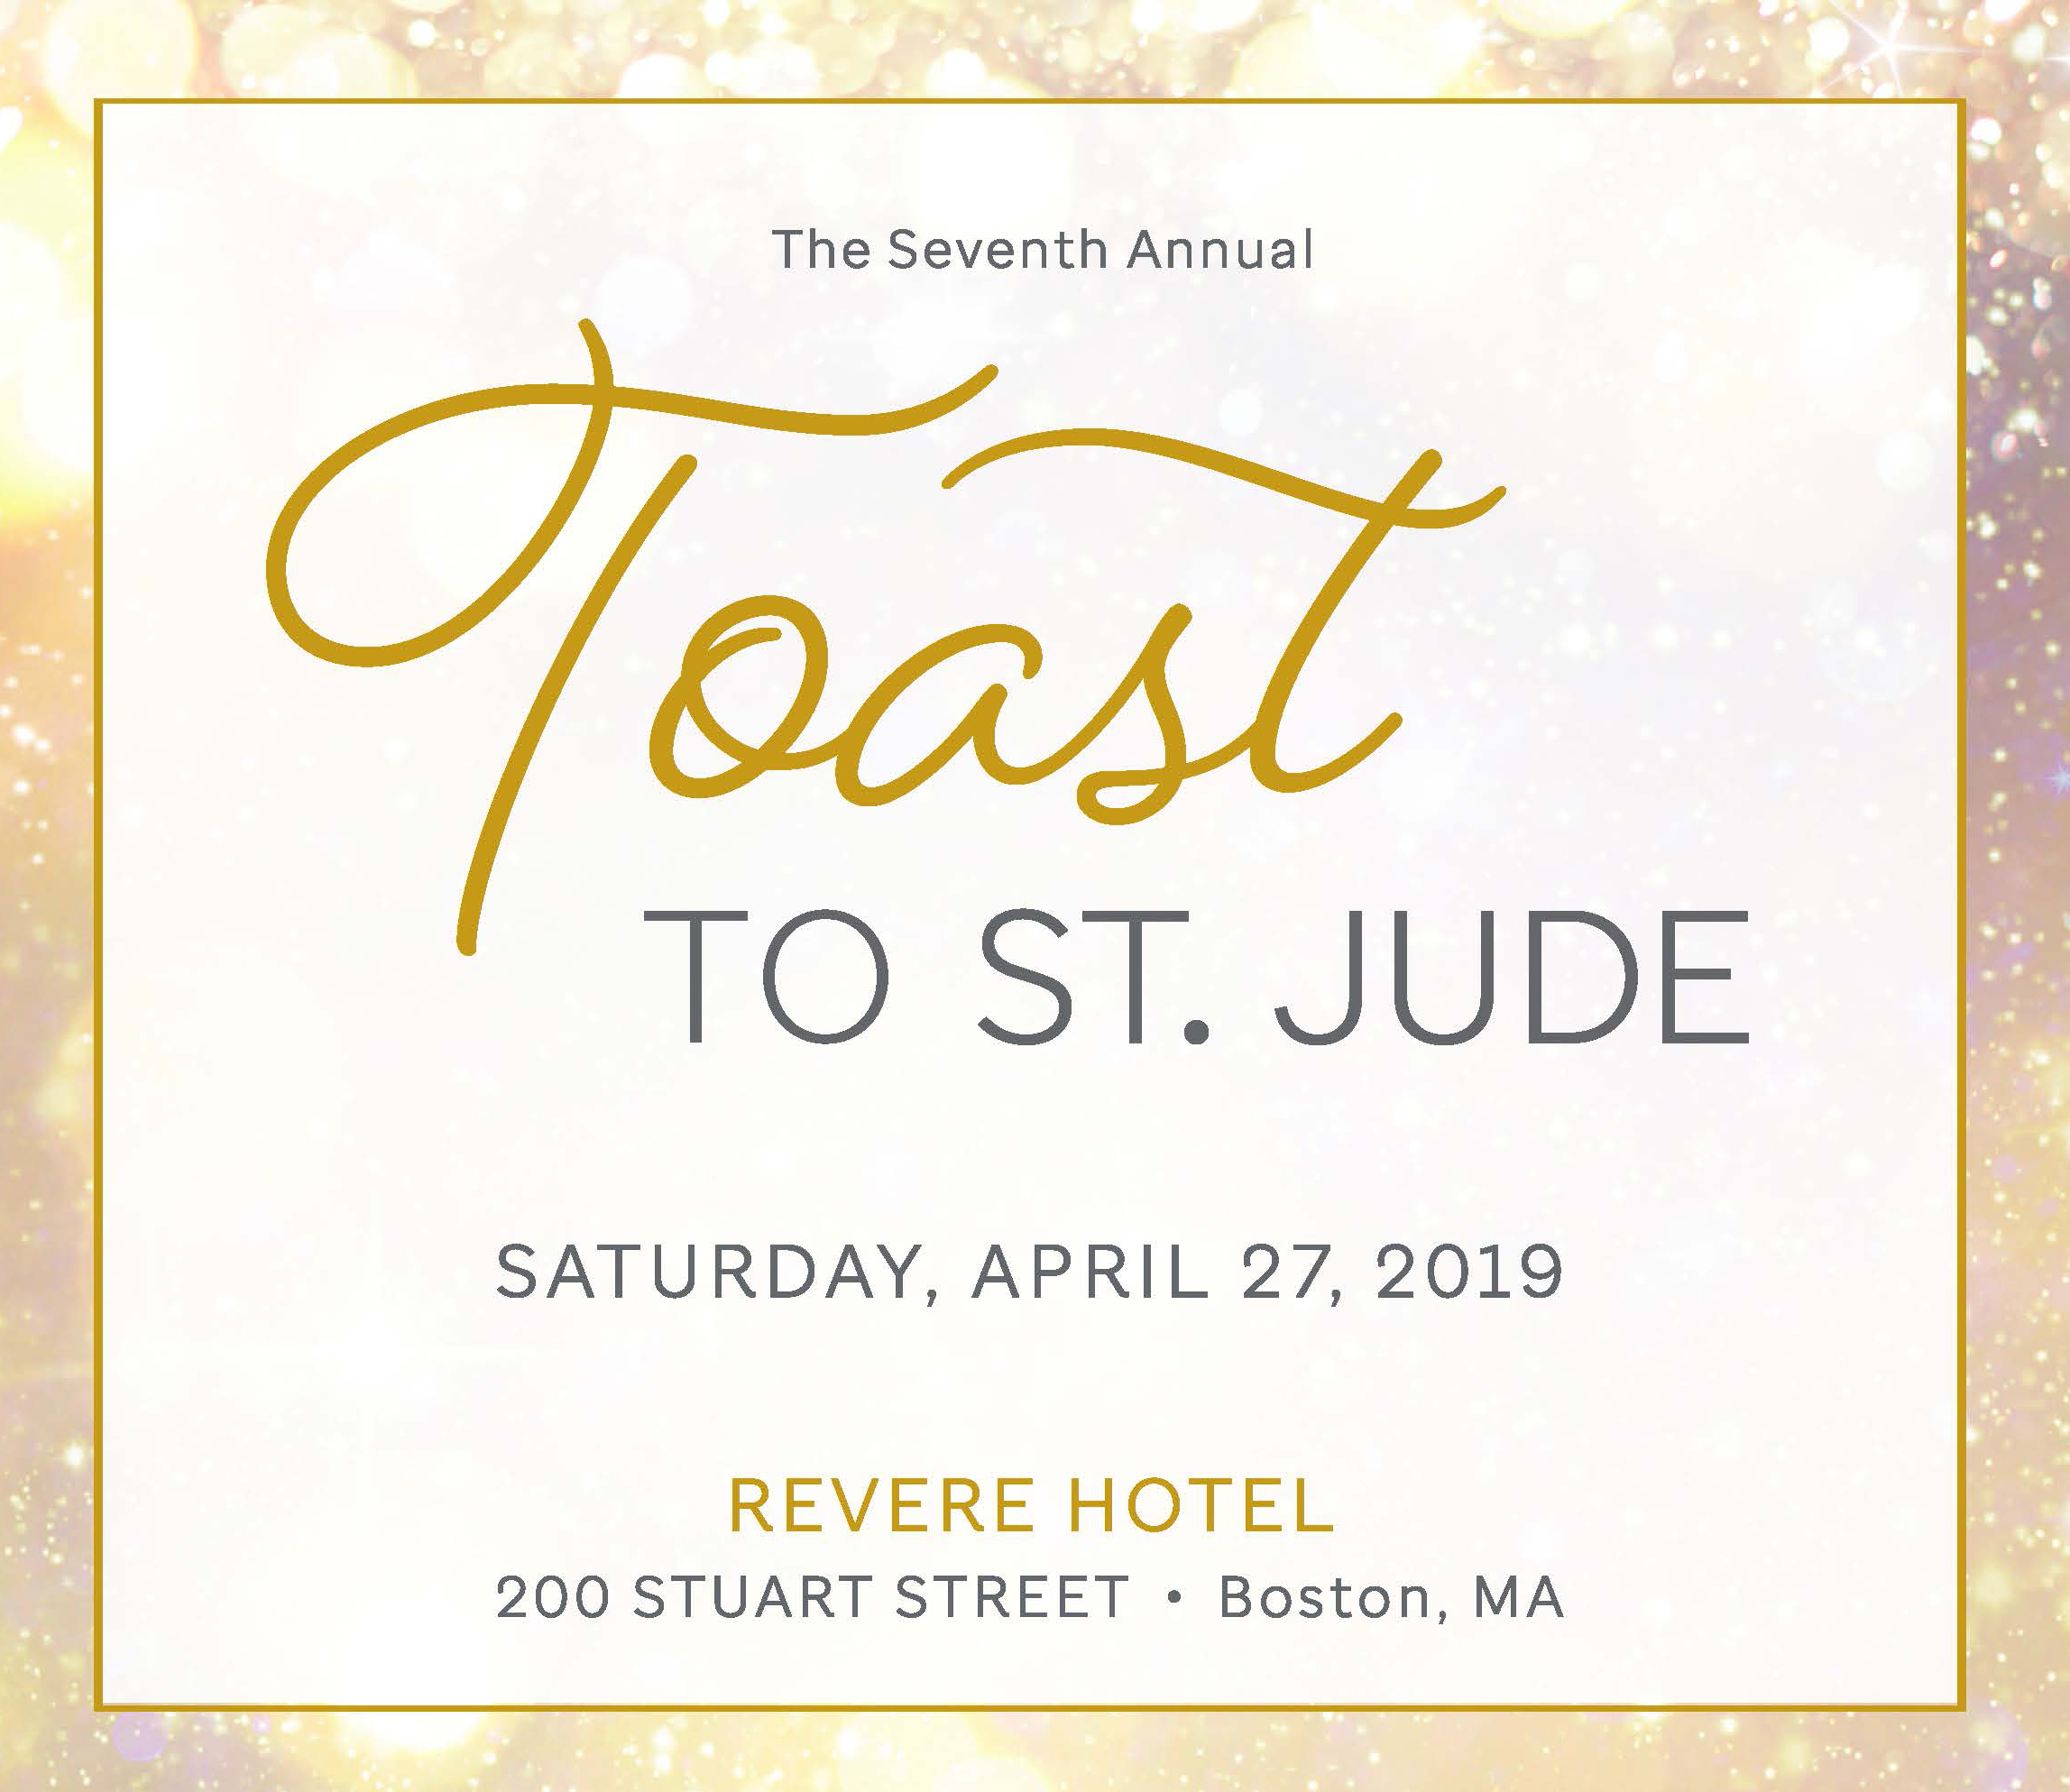 Toast To St. Jude Event